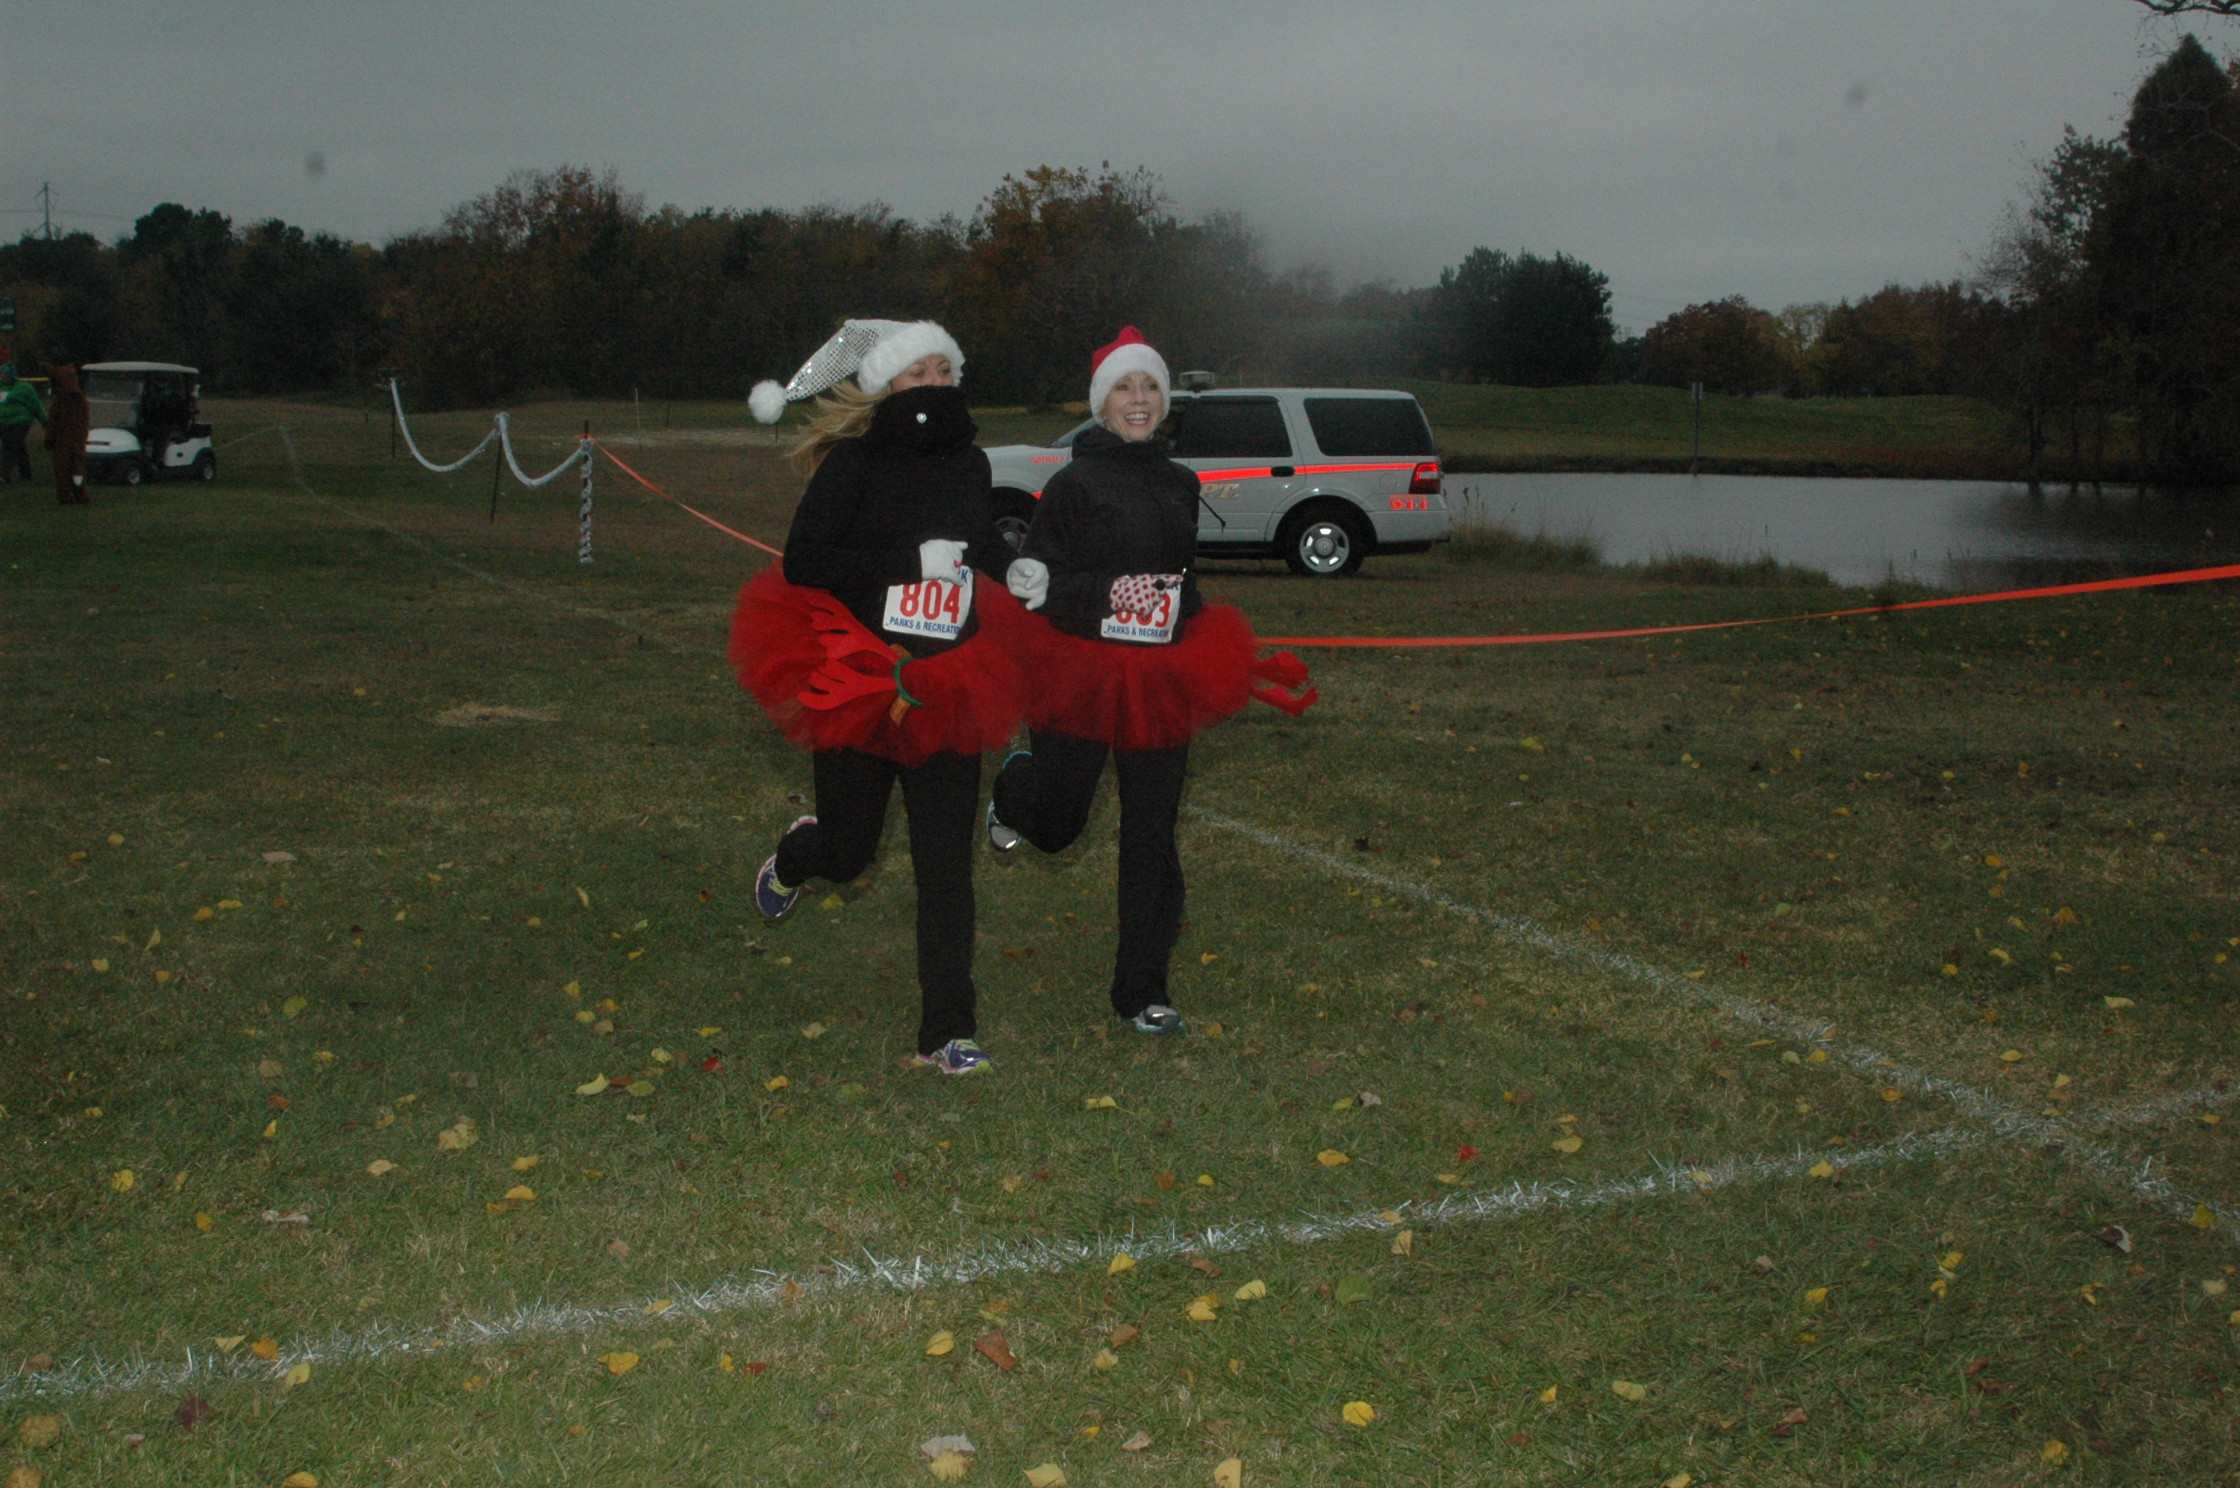 Two people running outside in Santa hats and Christmas red tutus